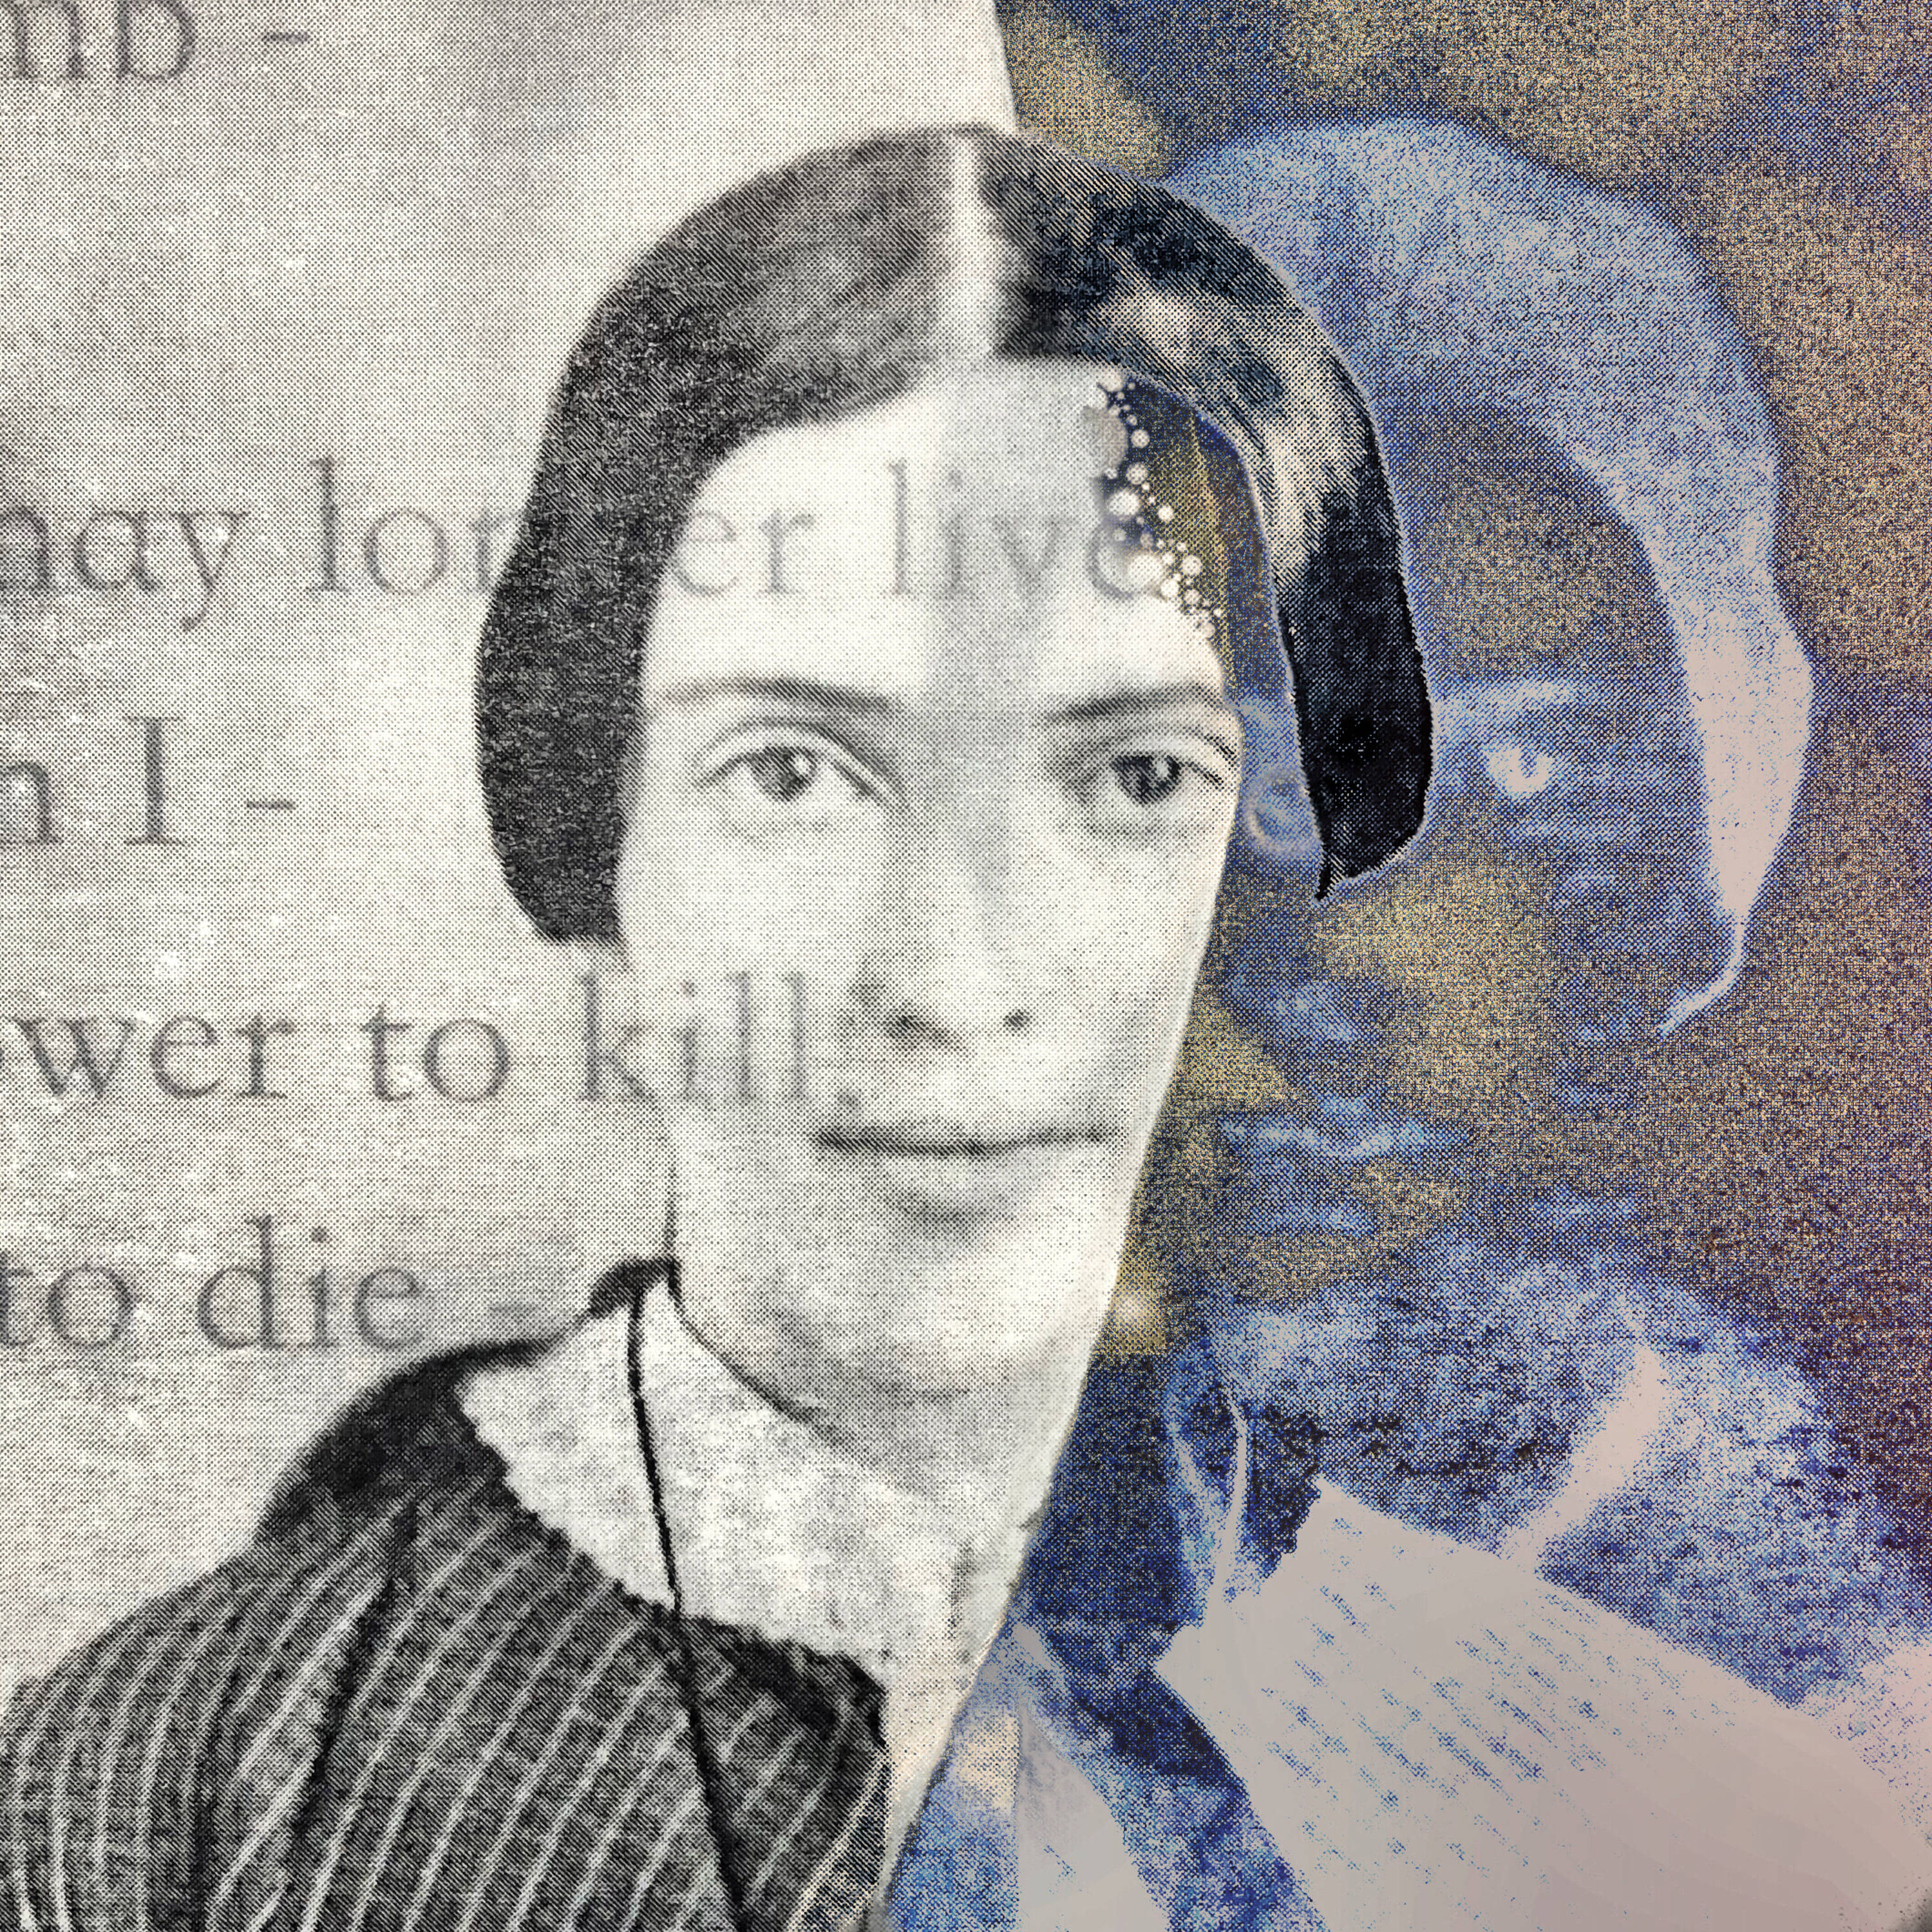 19: The Enigma of Emily Dickinson (Part 2)